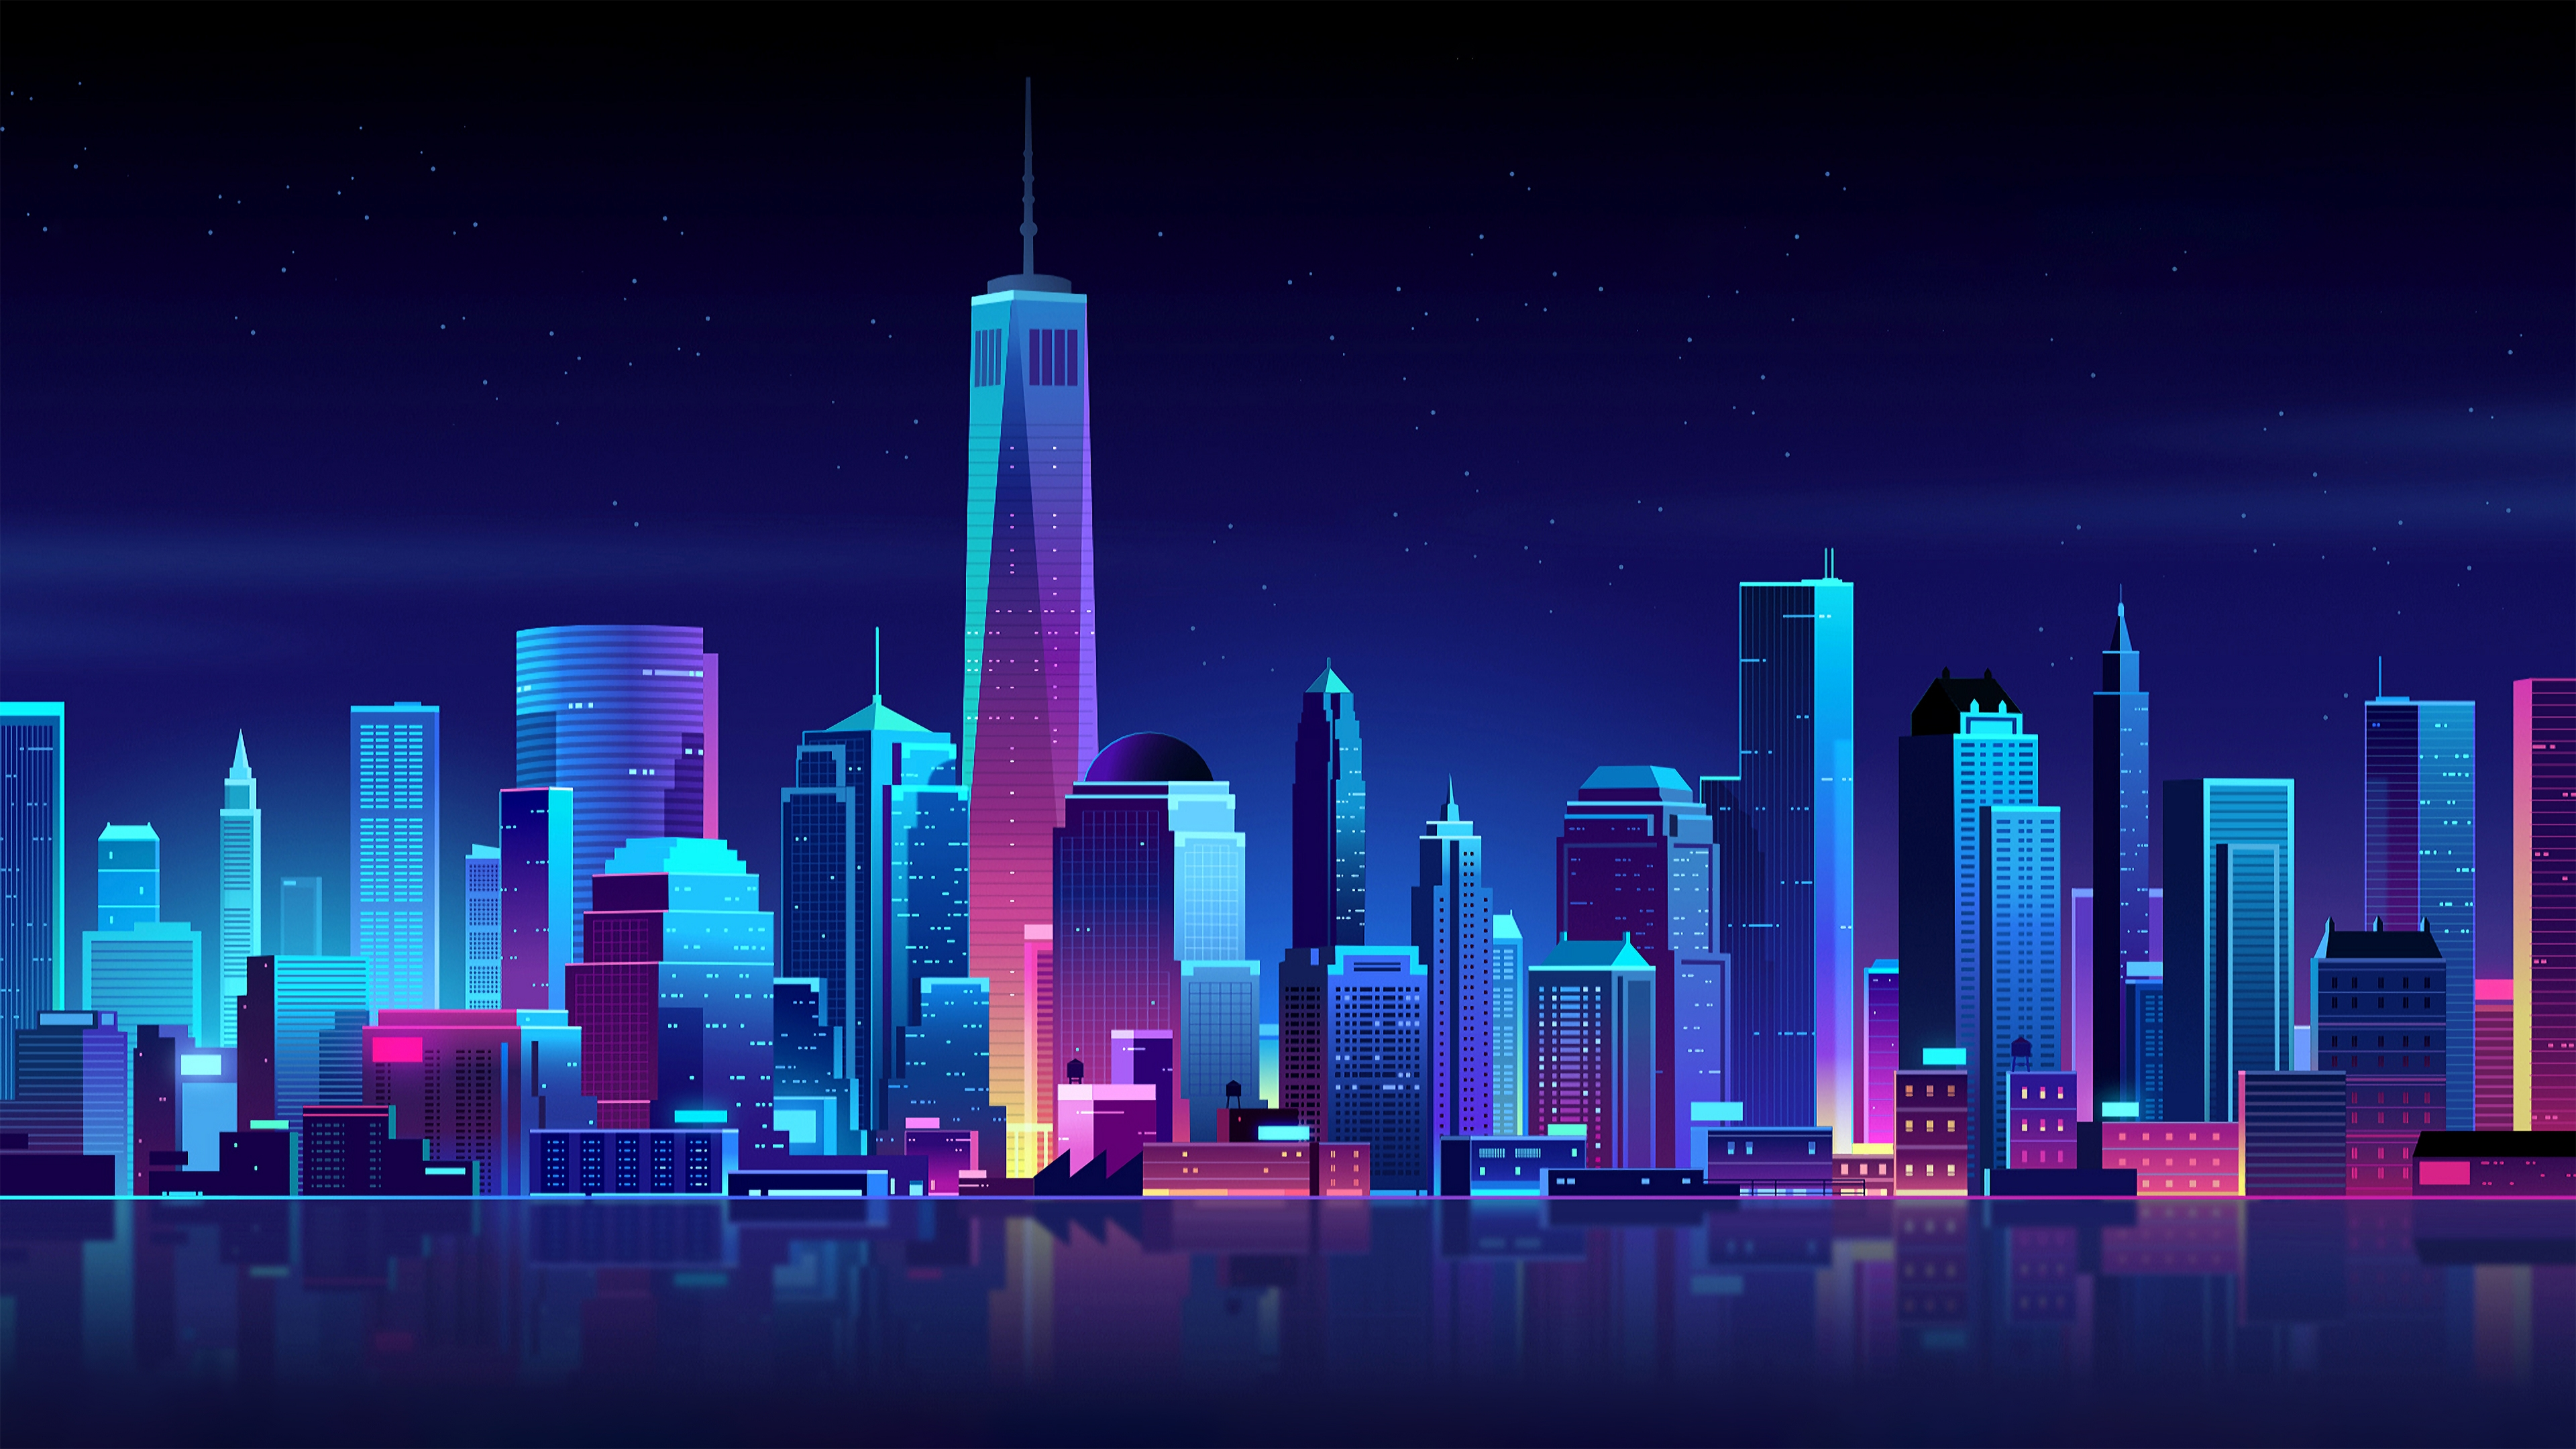 18 Neon Hd Wallpapers Backgrounds